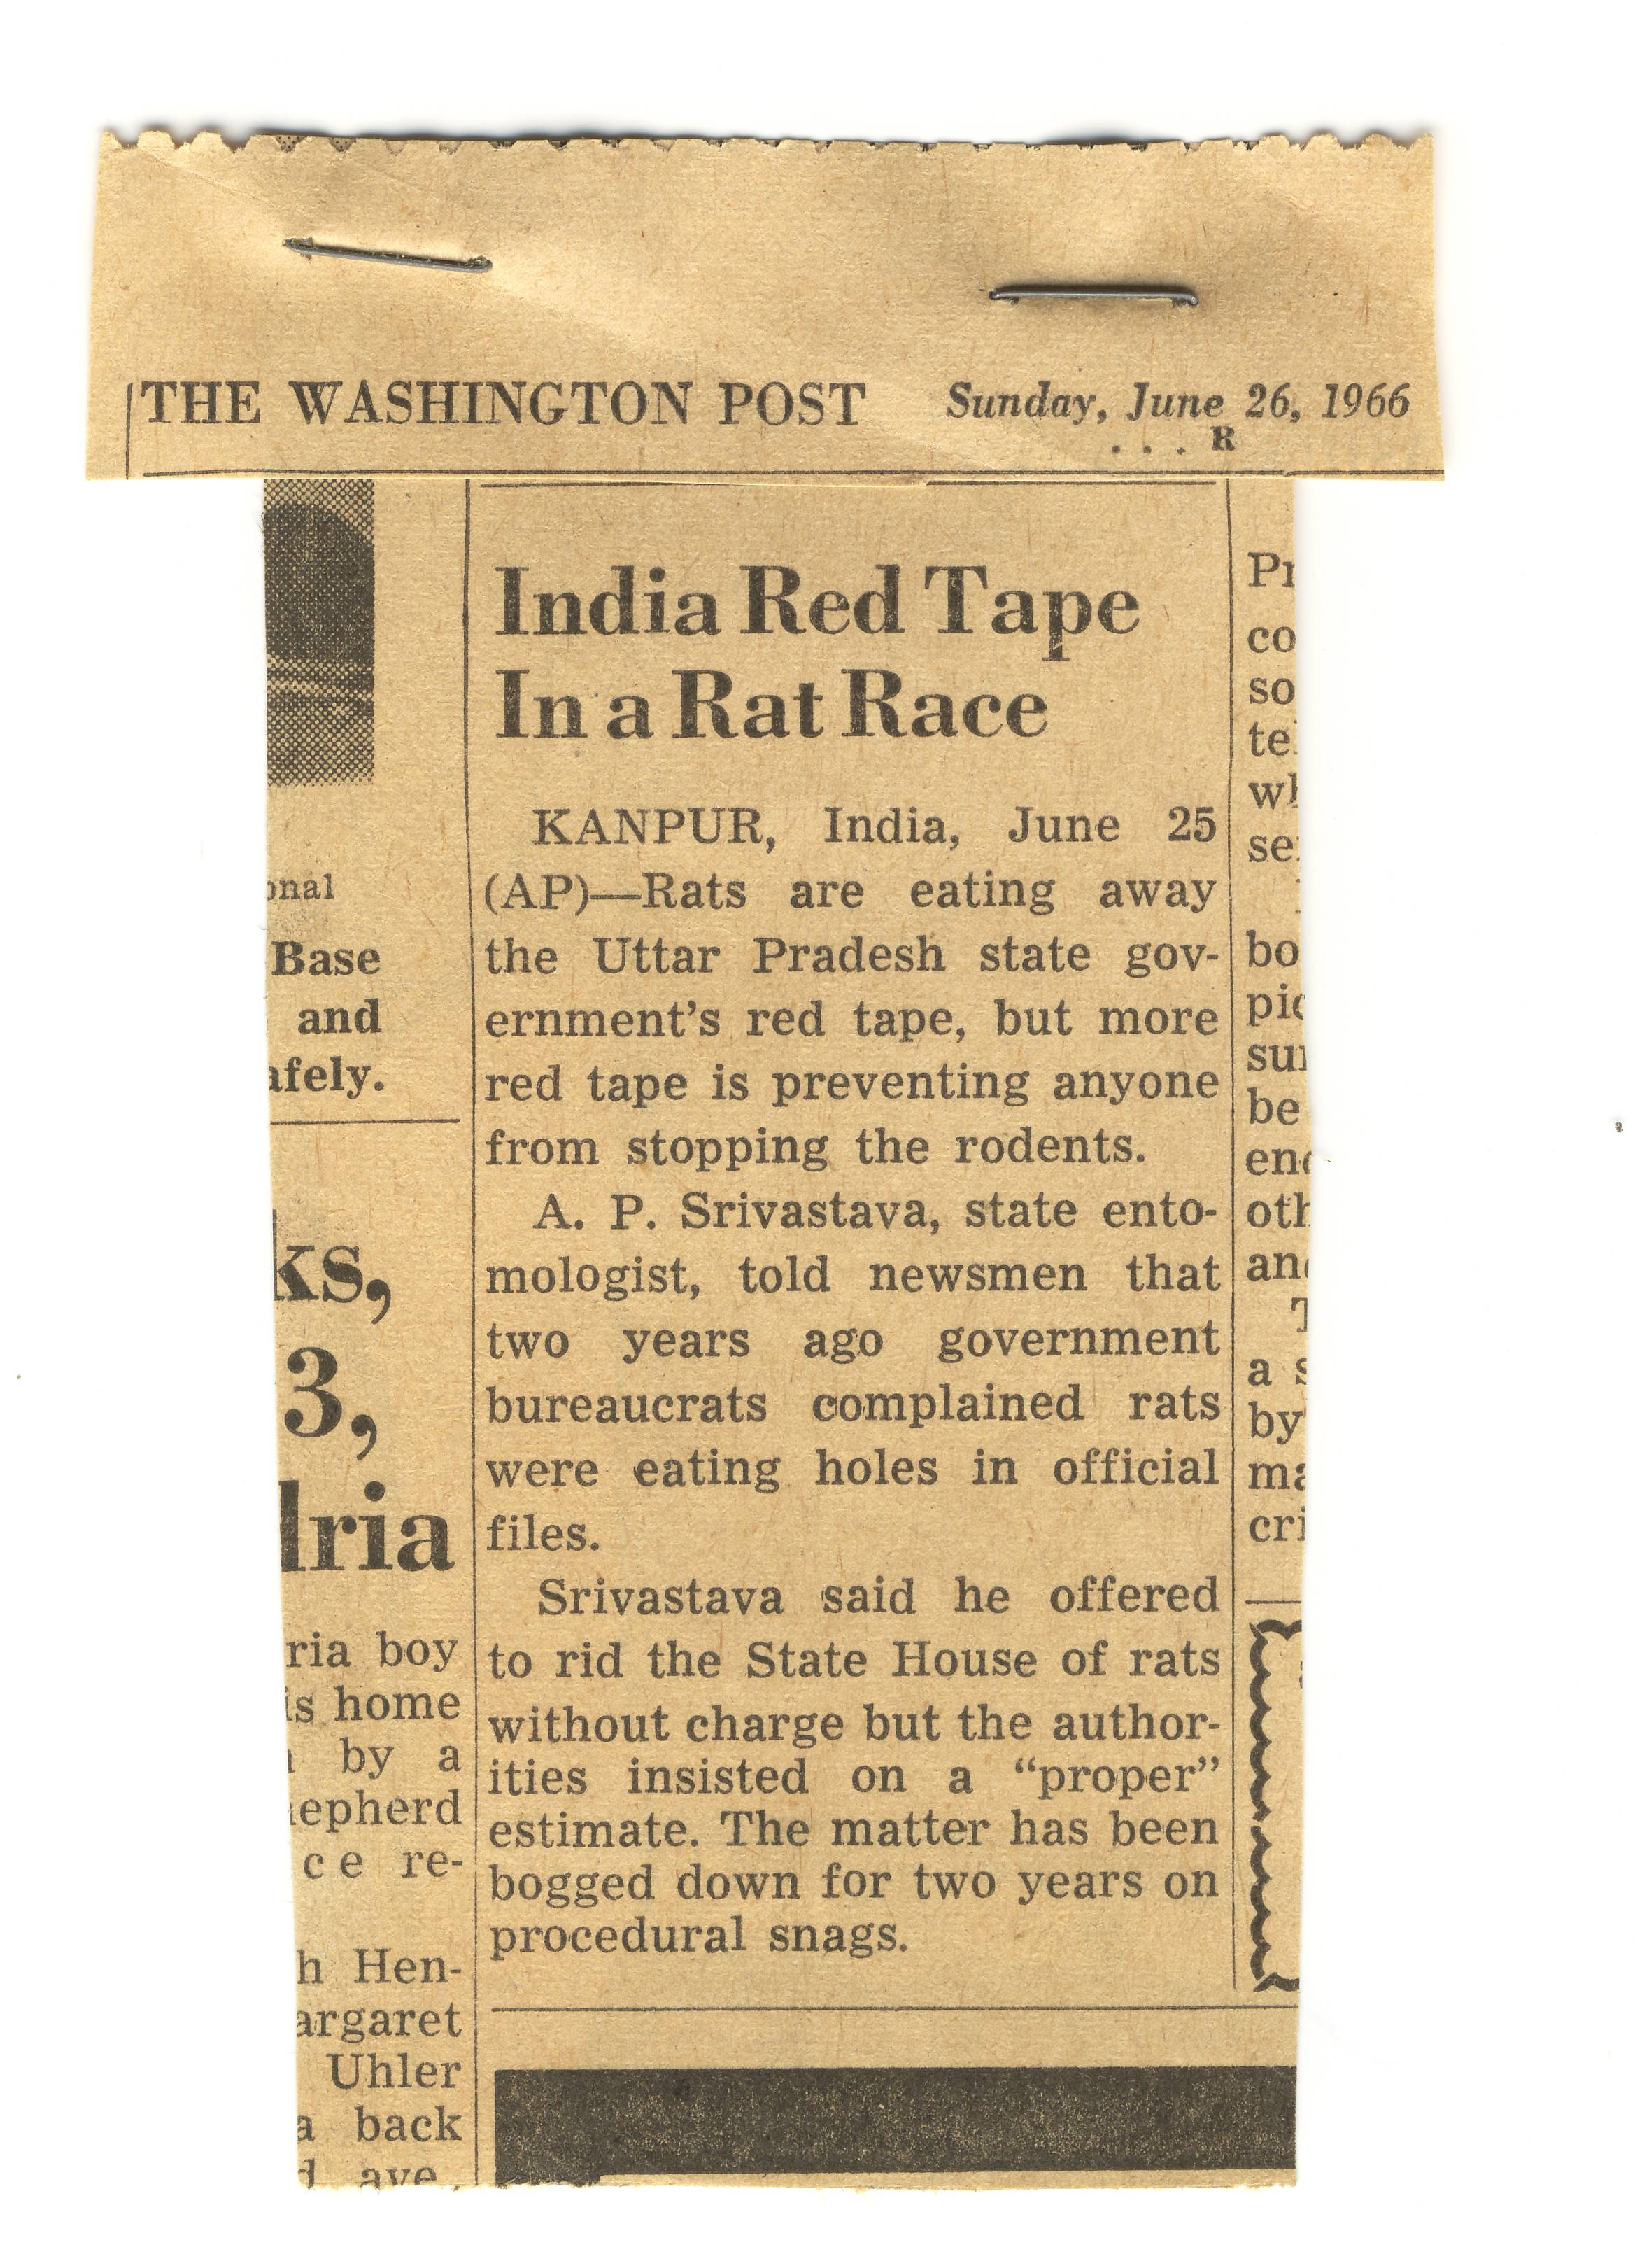 Red Tape Prevents Indian Govt. Action on Rats Eating Records - Collection MUNDN, file Misc. Letters and Writings, box 3.jpg